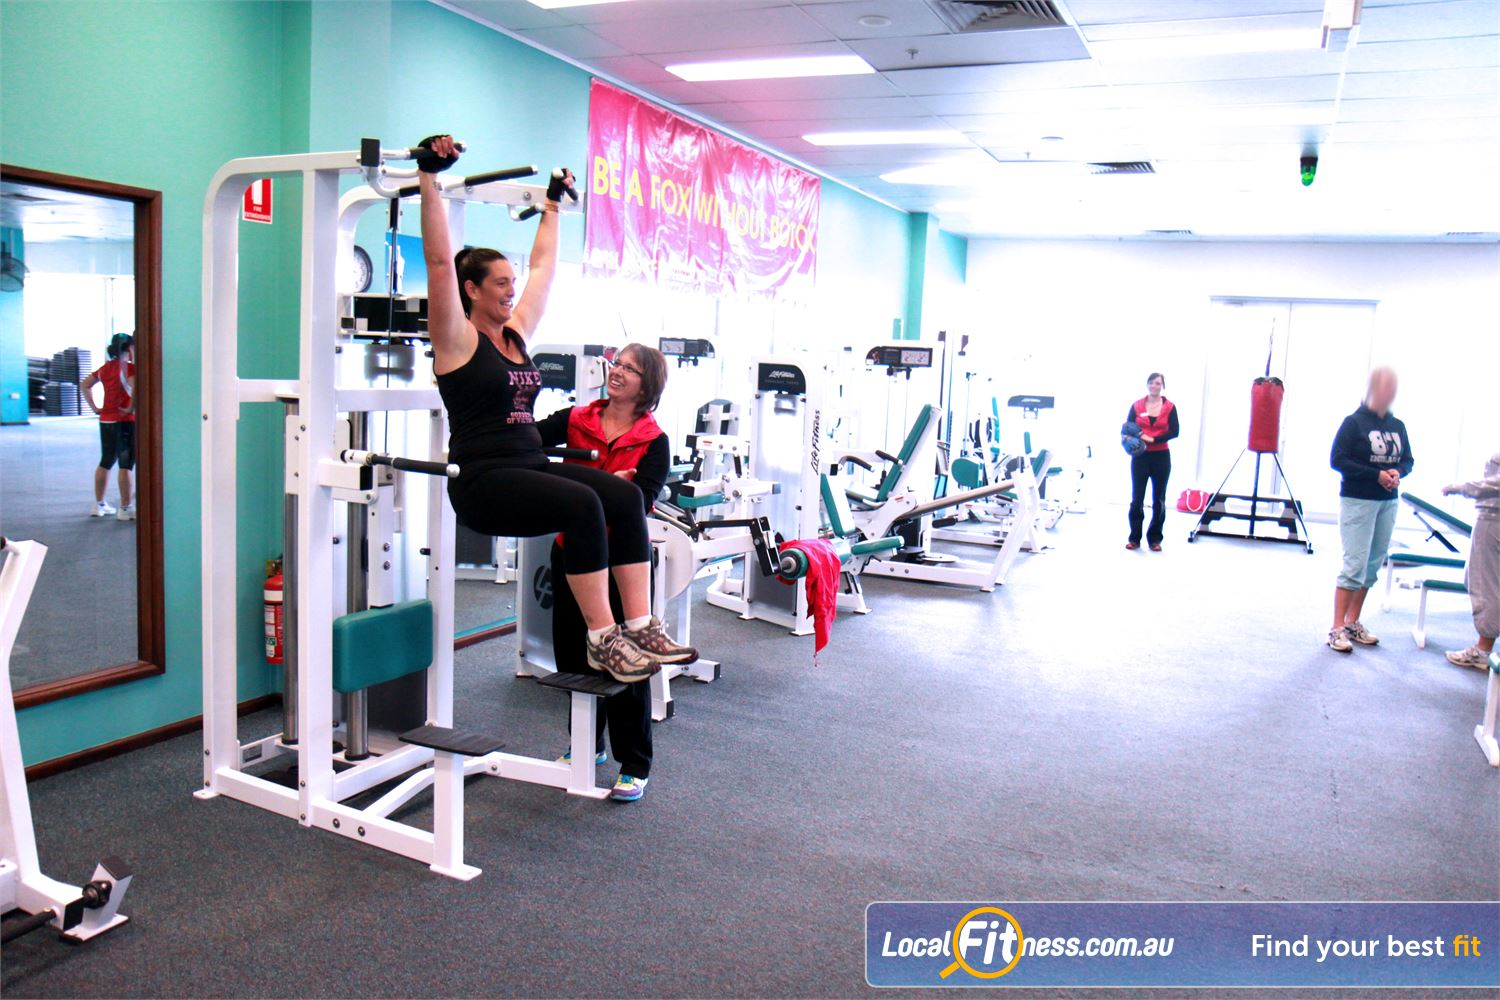 Fernwood Fitness Gungahlin Our Gungahlin women's gym includes state of the art equipment.